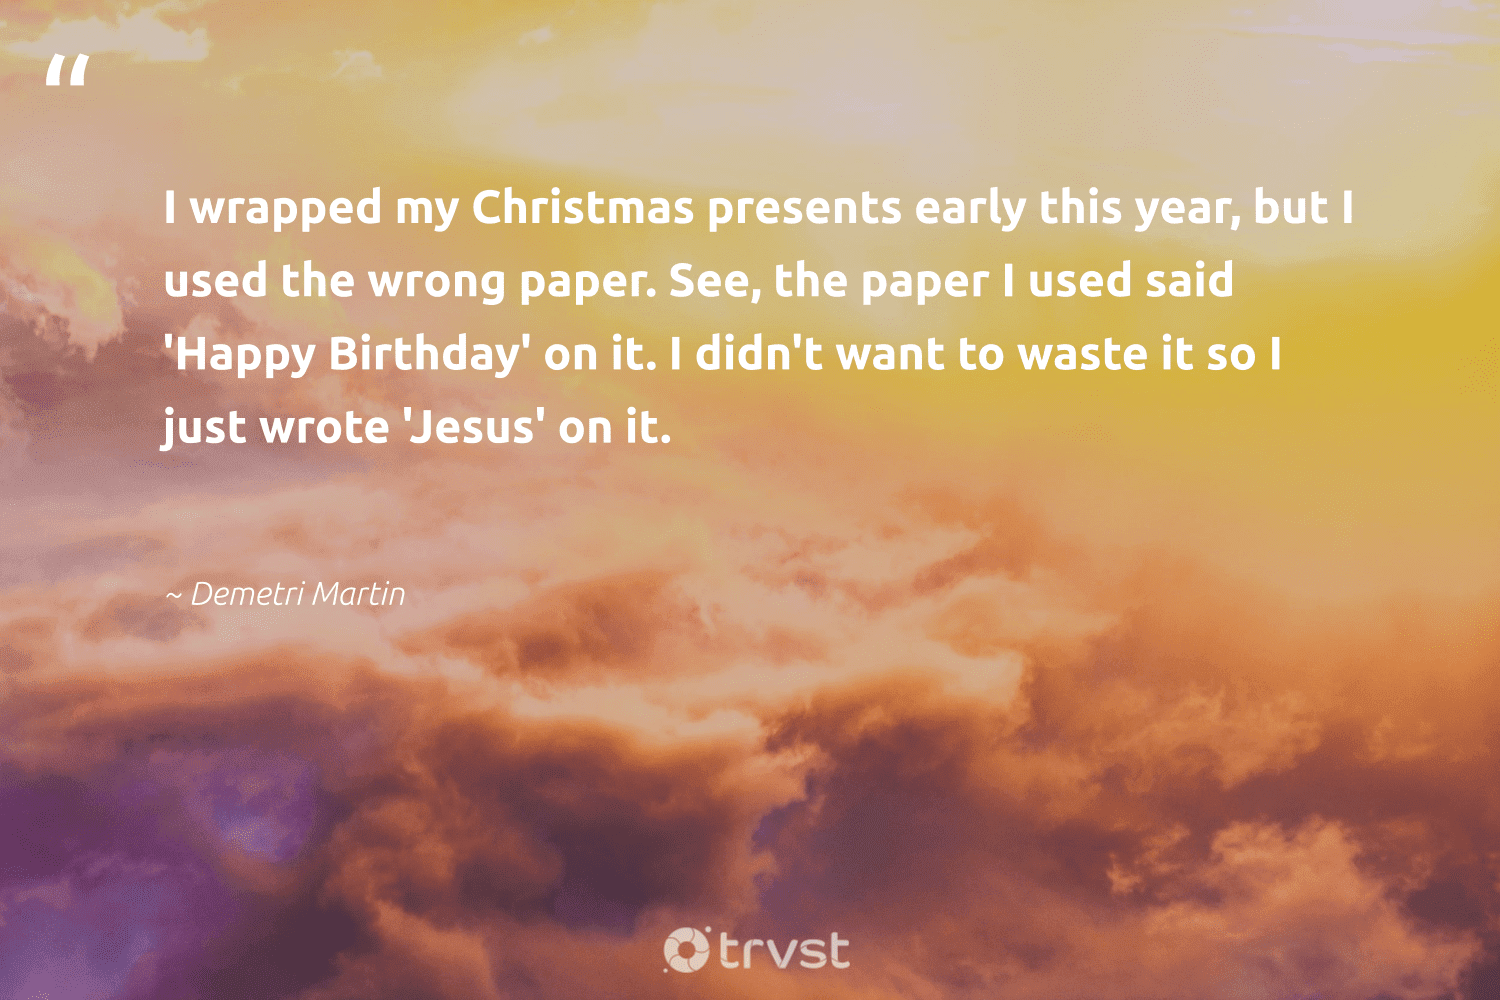 """""""I wrapped my Christmas presents early this year, but I used the wrong paper. See, the paper I used said 'Happy Birthday' on it. I didn't want to waste it so I just wrote 'Jesus' on it.""""  - Demetri Martin #trvst #quotes #waste #happy #ecofriendly #planetearthfirst #environment #impact #plantbased #thinkgreen #betterfortheplanet #changetheworld"""